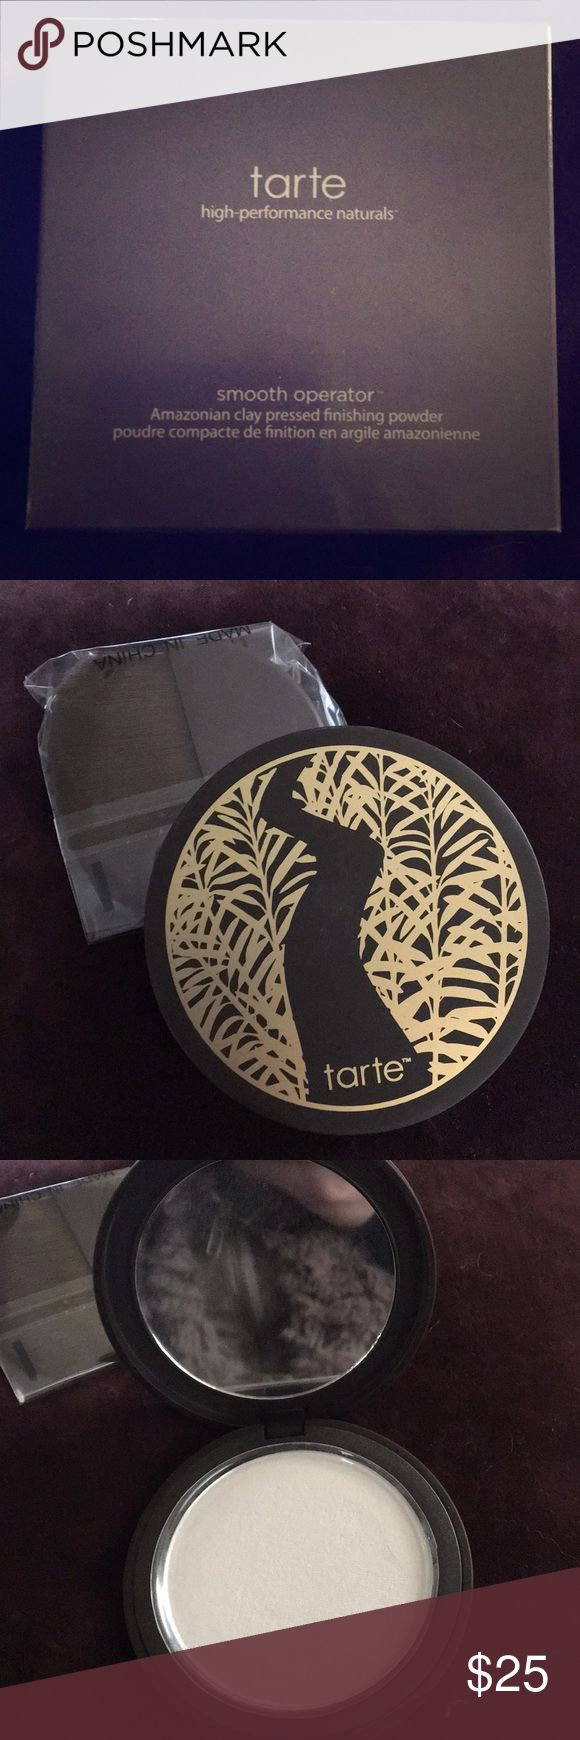 Tarte Smooth Operator Pressed finishing powder NIB. Amazonian clay presses finishing powder. Amazing product for setting makeup. Tarte Makeup Face Powder